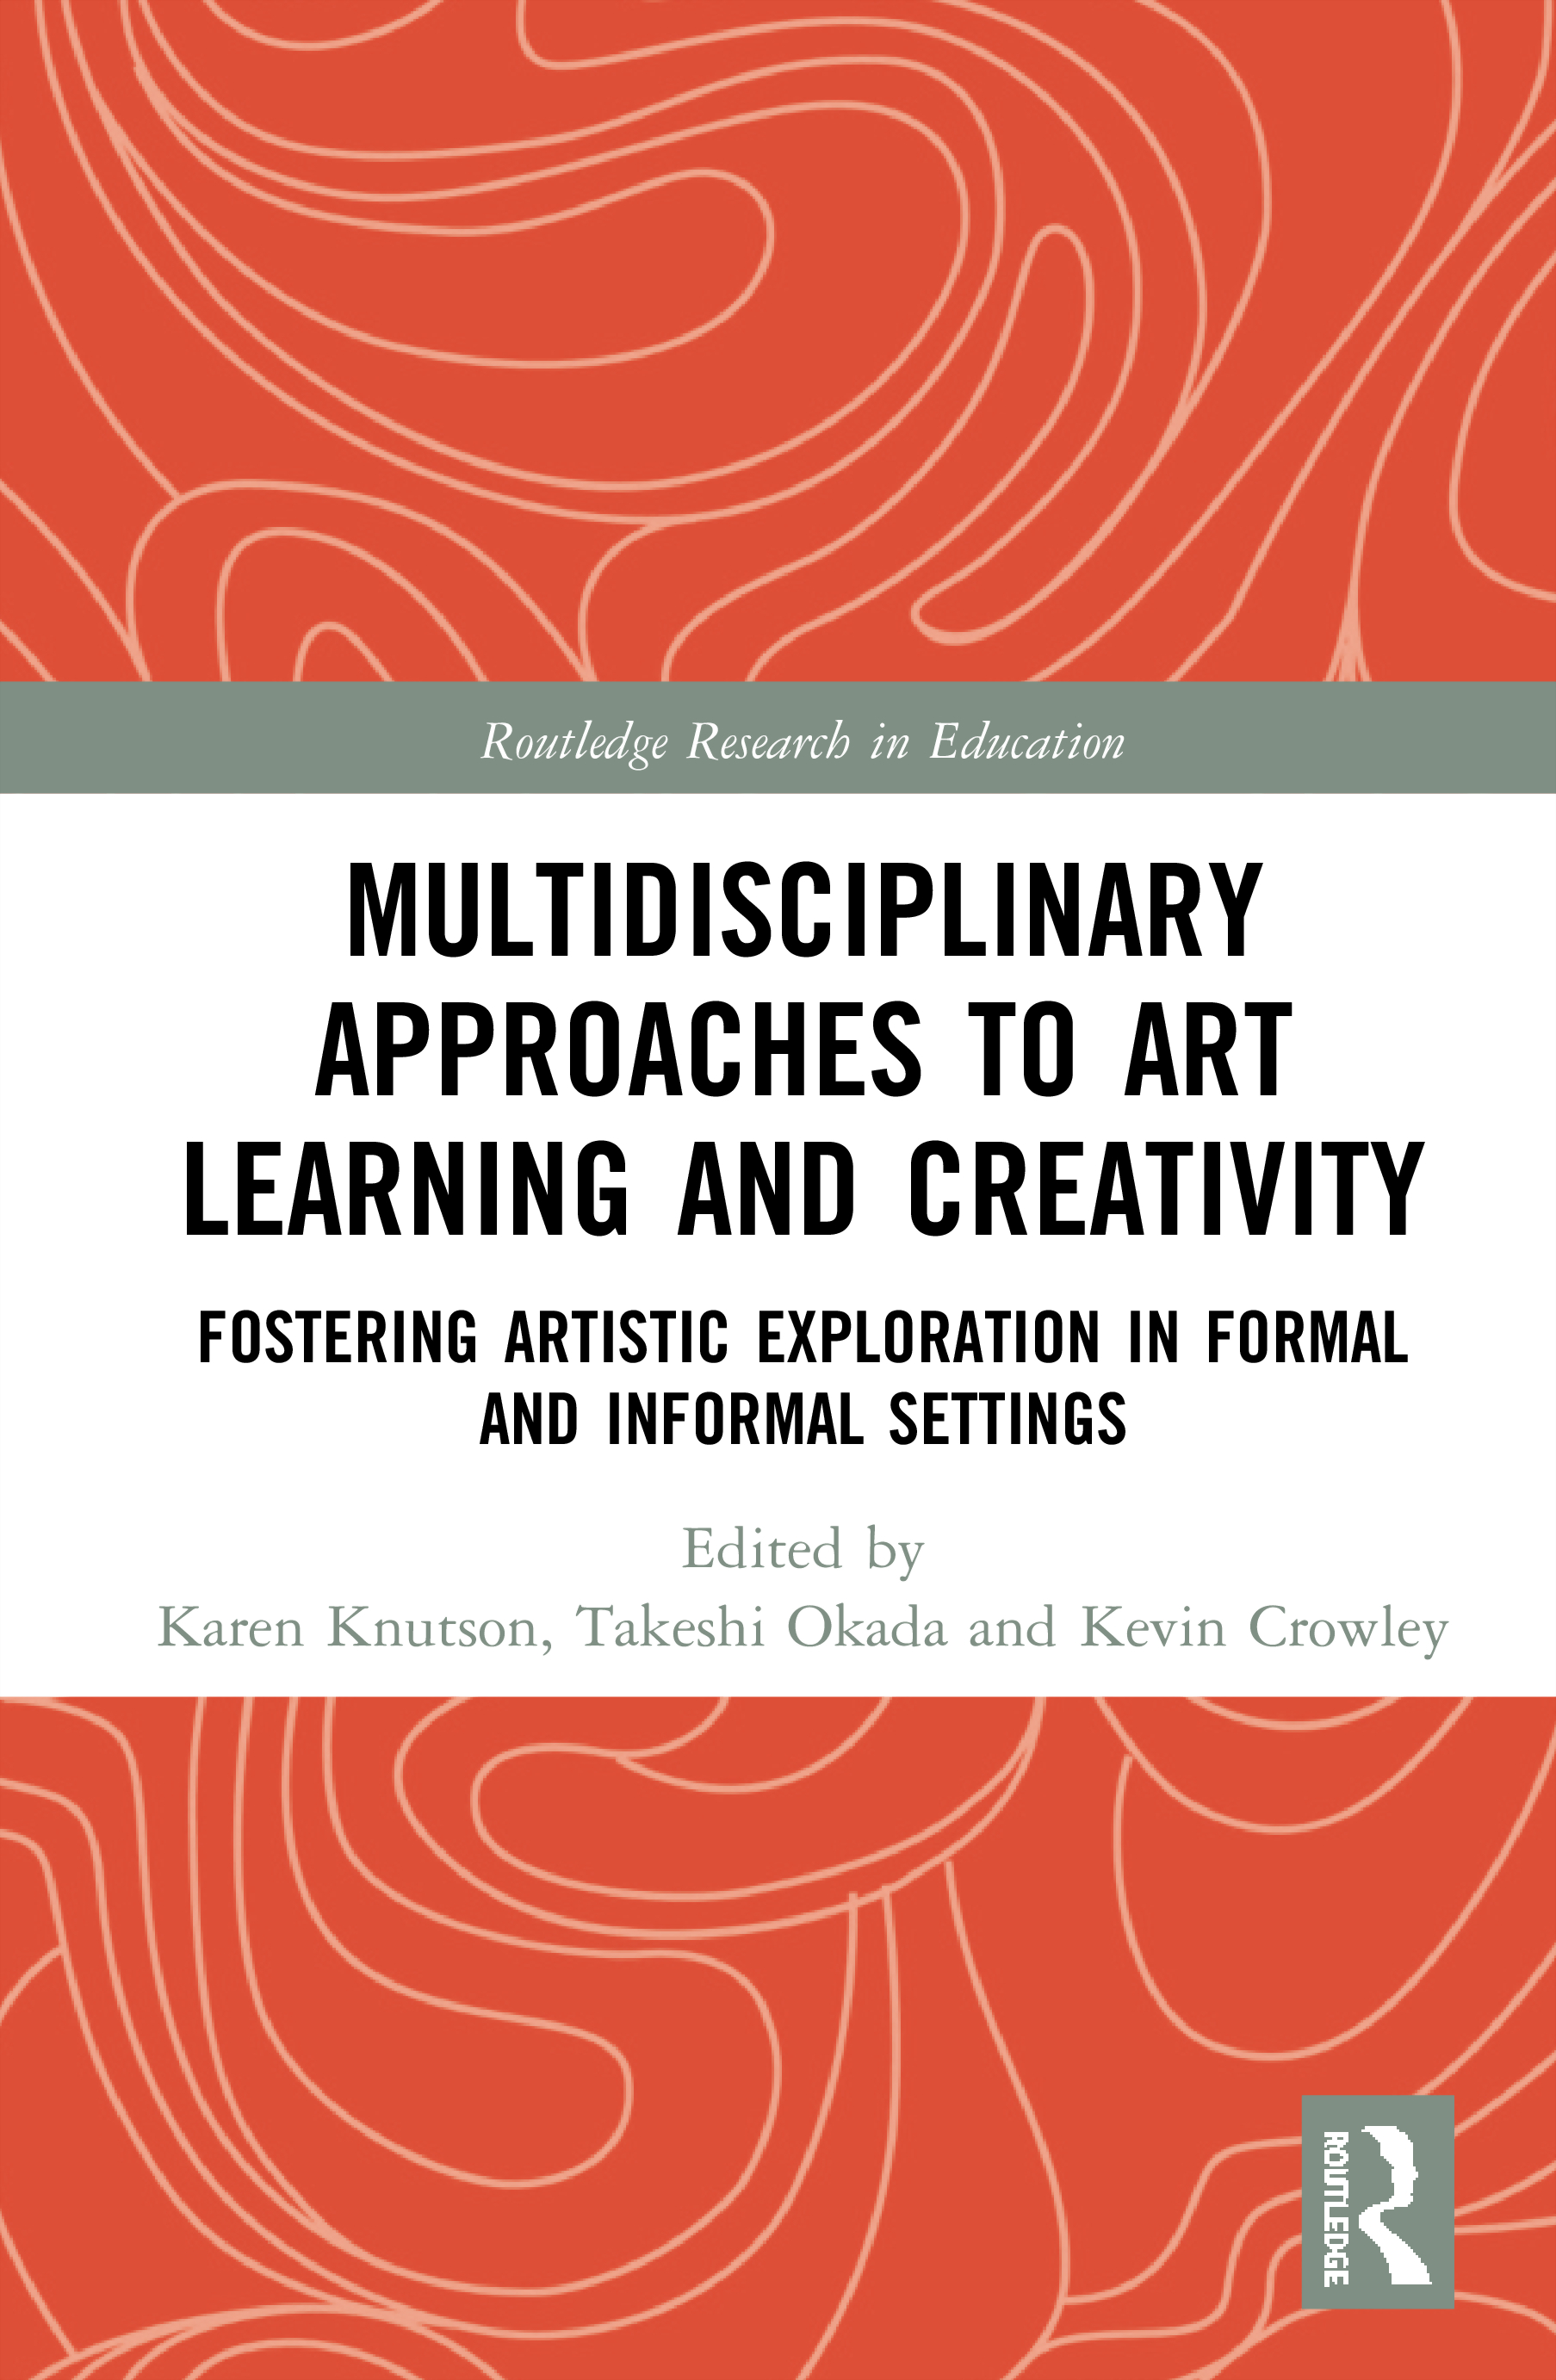 Multidisciplinary Approaches to Art Learning and Creativity: Fostering Artistic Exploration in Formal and Informal Settings book cover